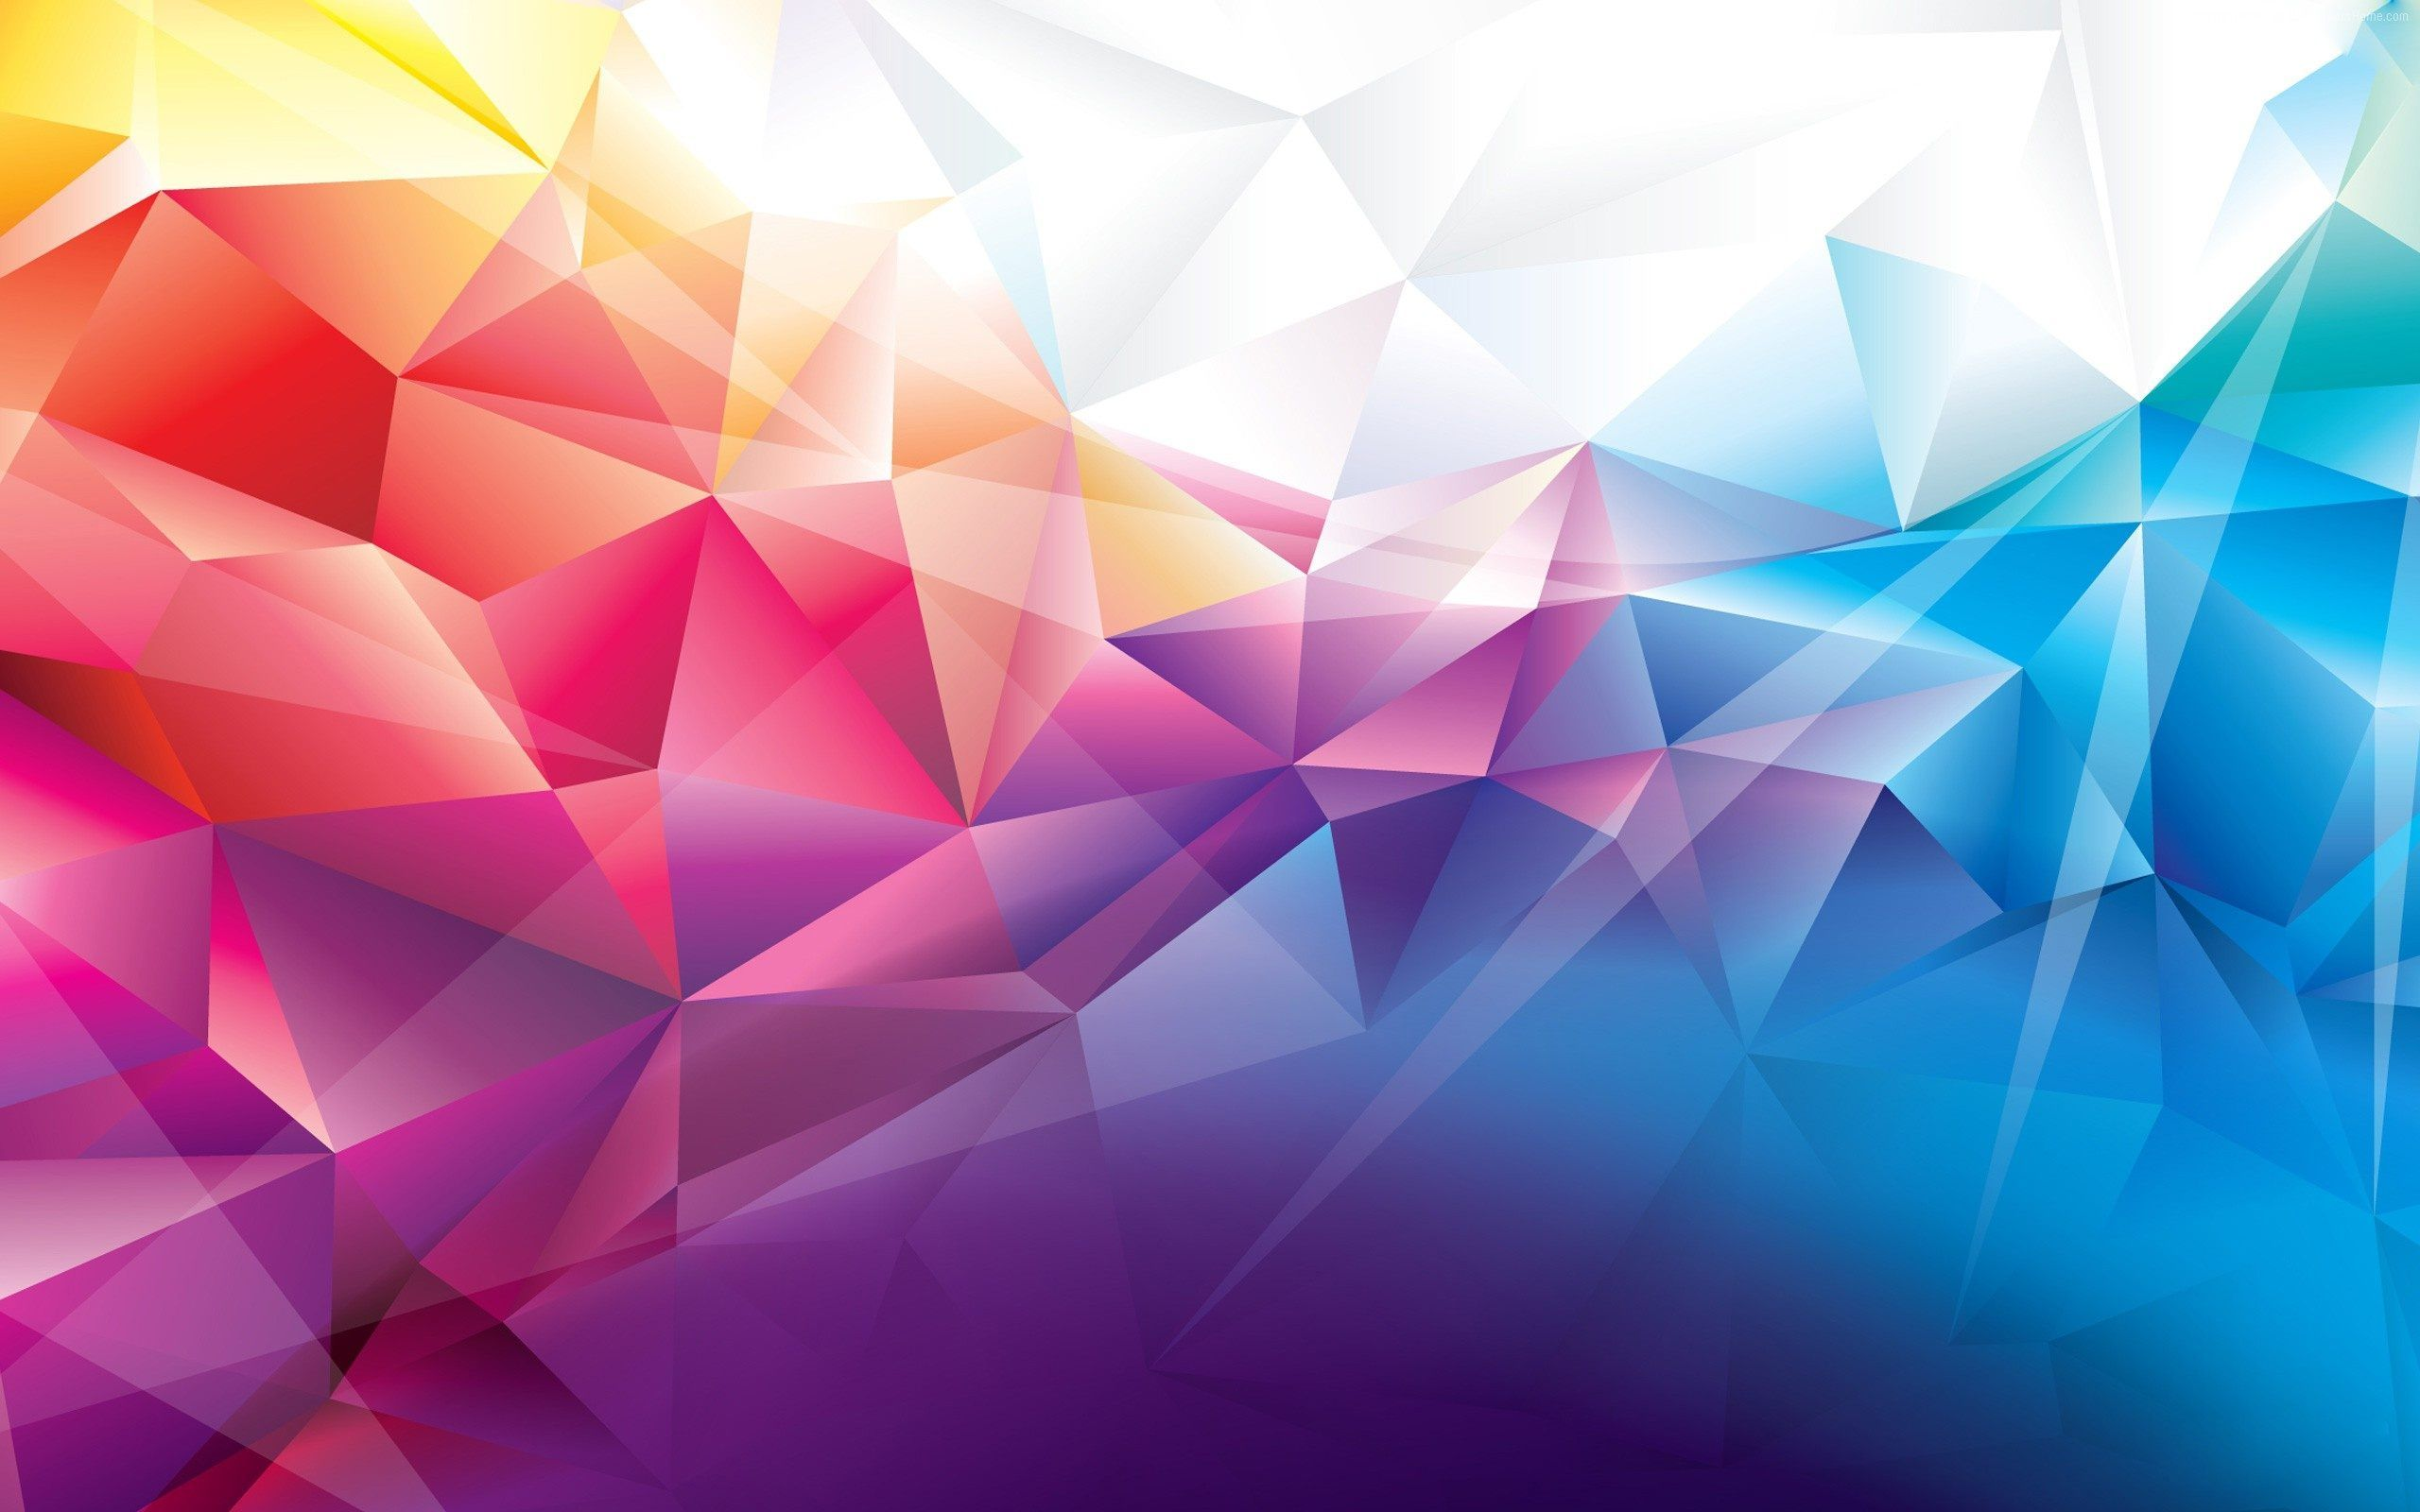 Polygon Shape Abstract Design Wallpaper Hd For Desktop Abstrak Seni Gambar